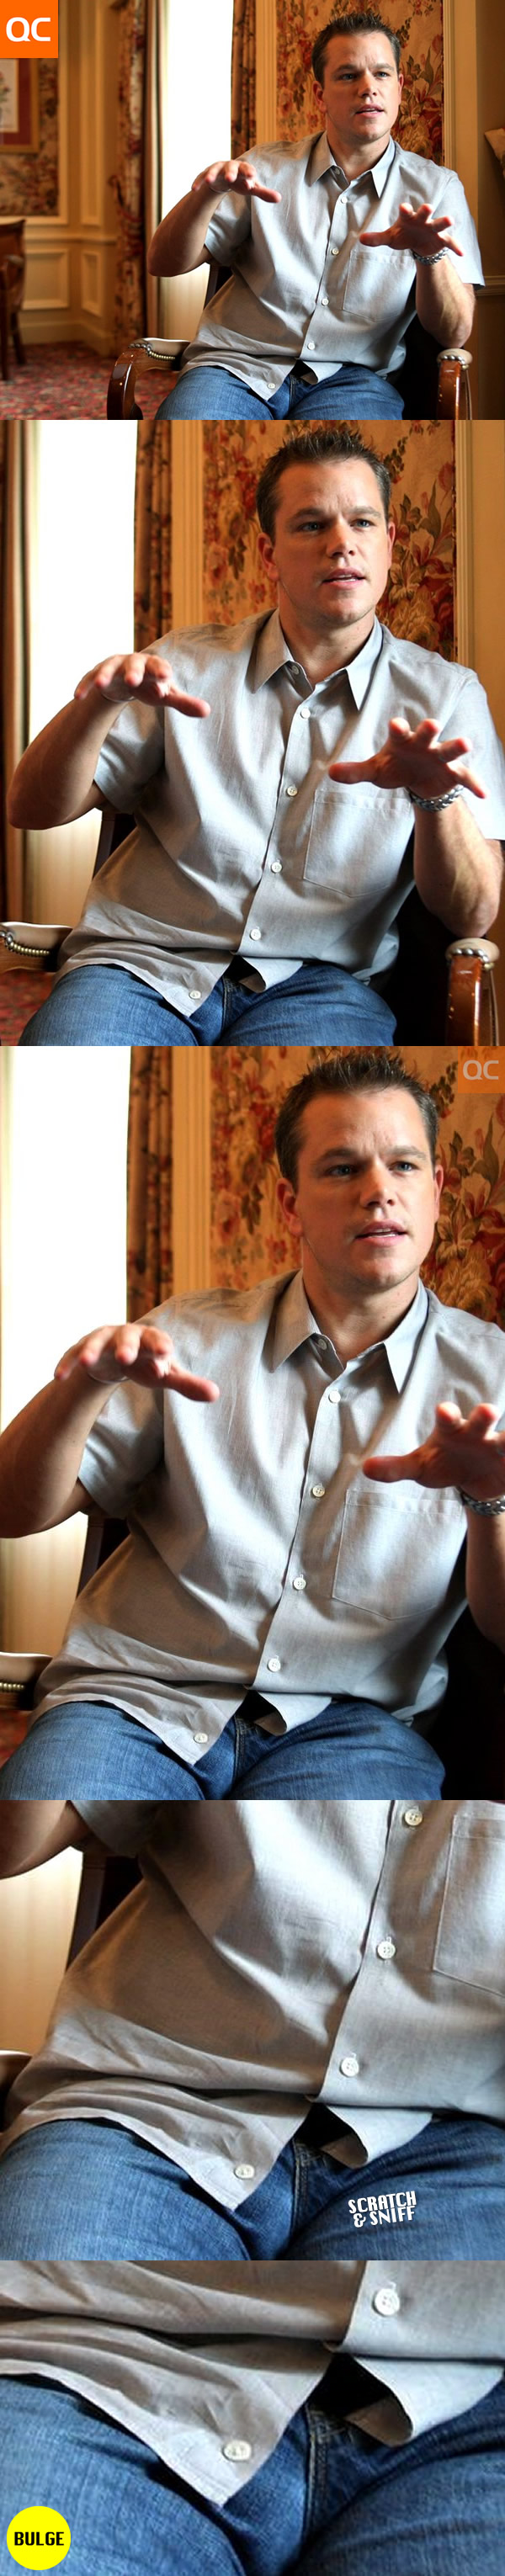 Matt Damon Denim Bulge